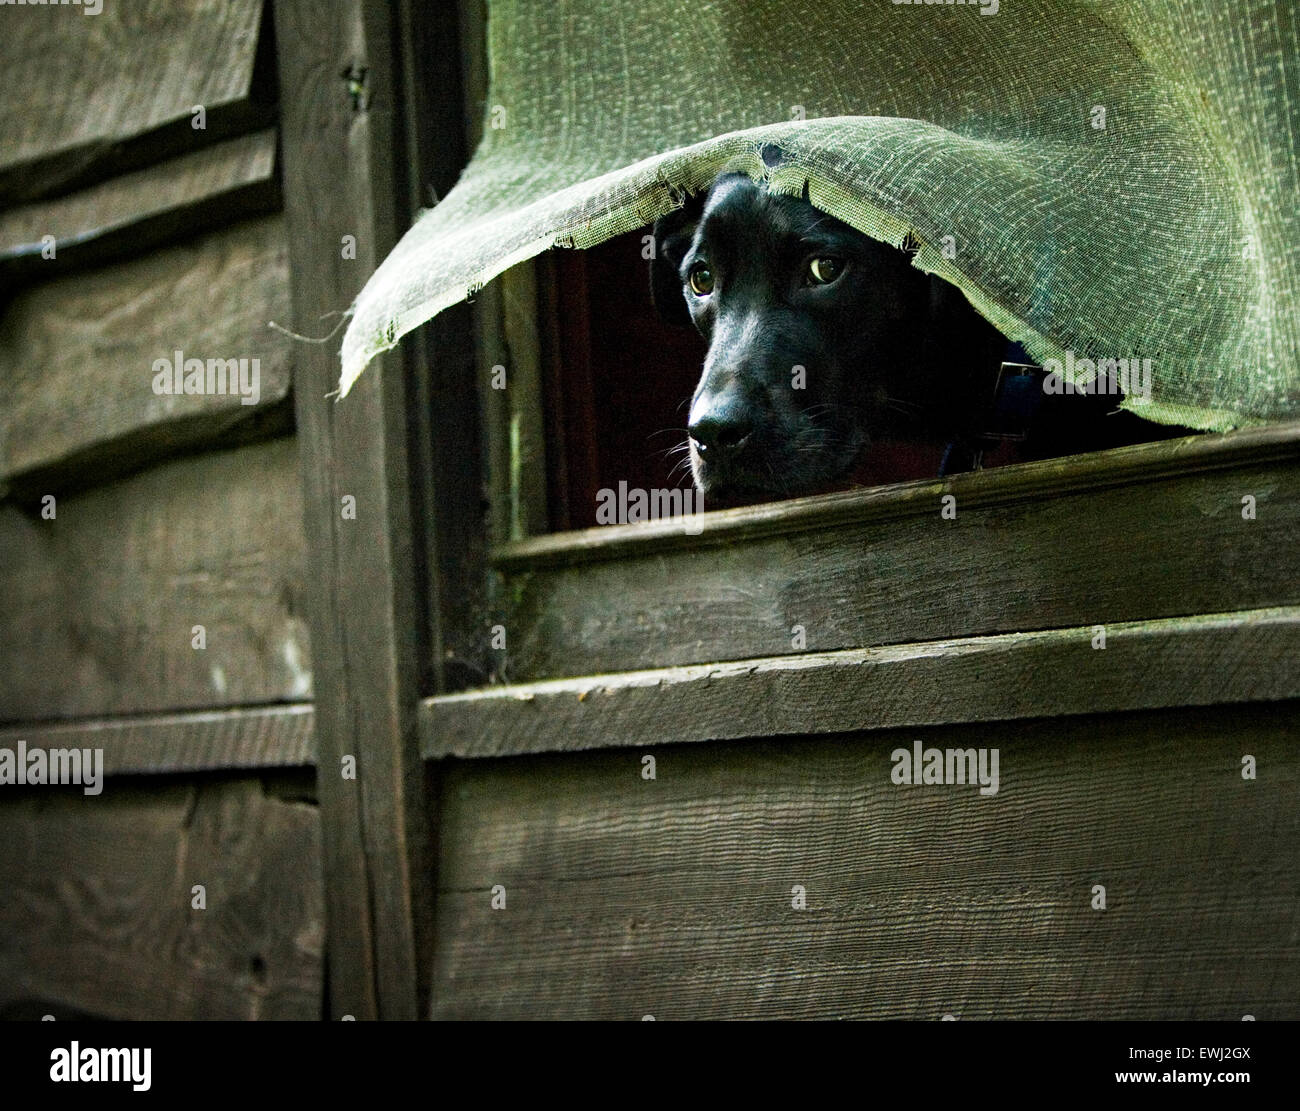 Large black Labrador Retriever dog sticking his head through a broken screen window of an old wood sided cabin - Stock Image